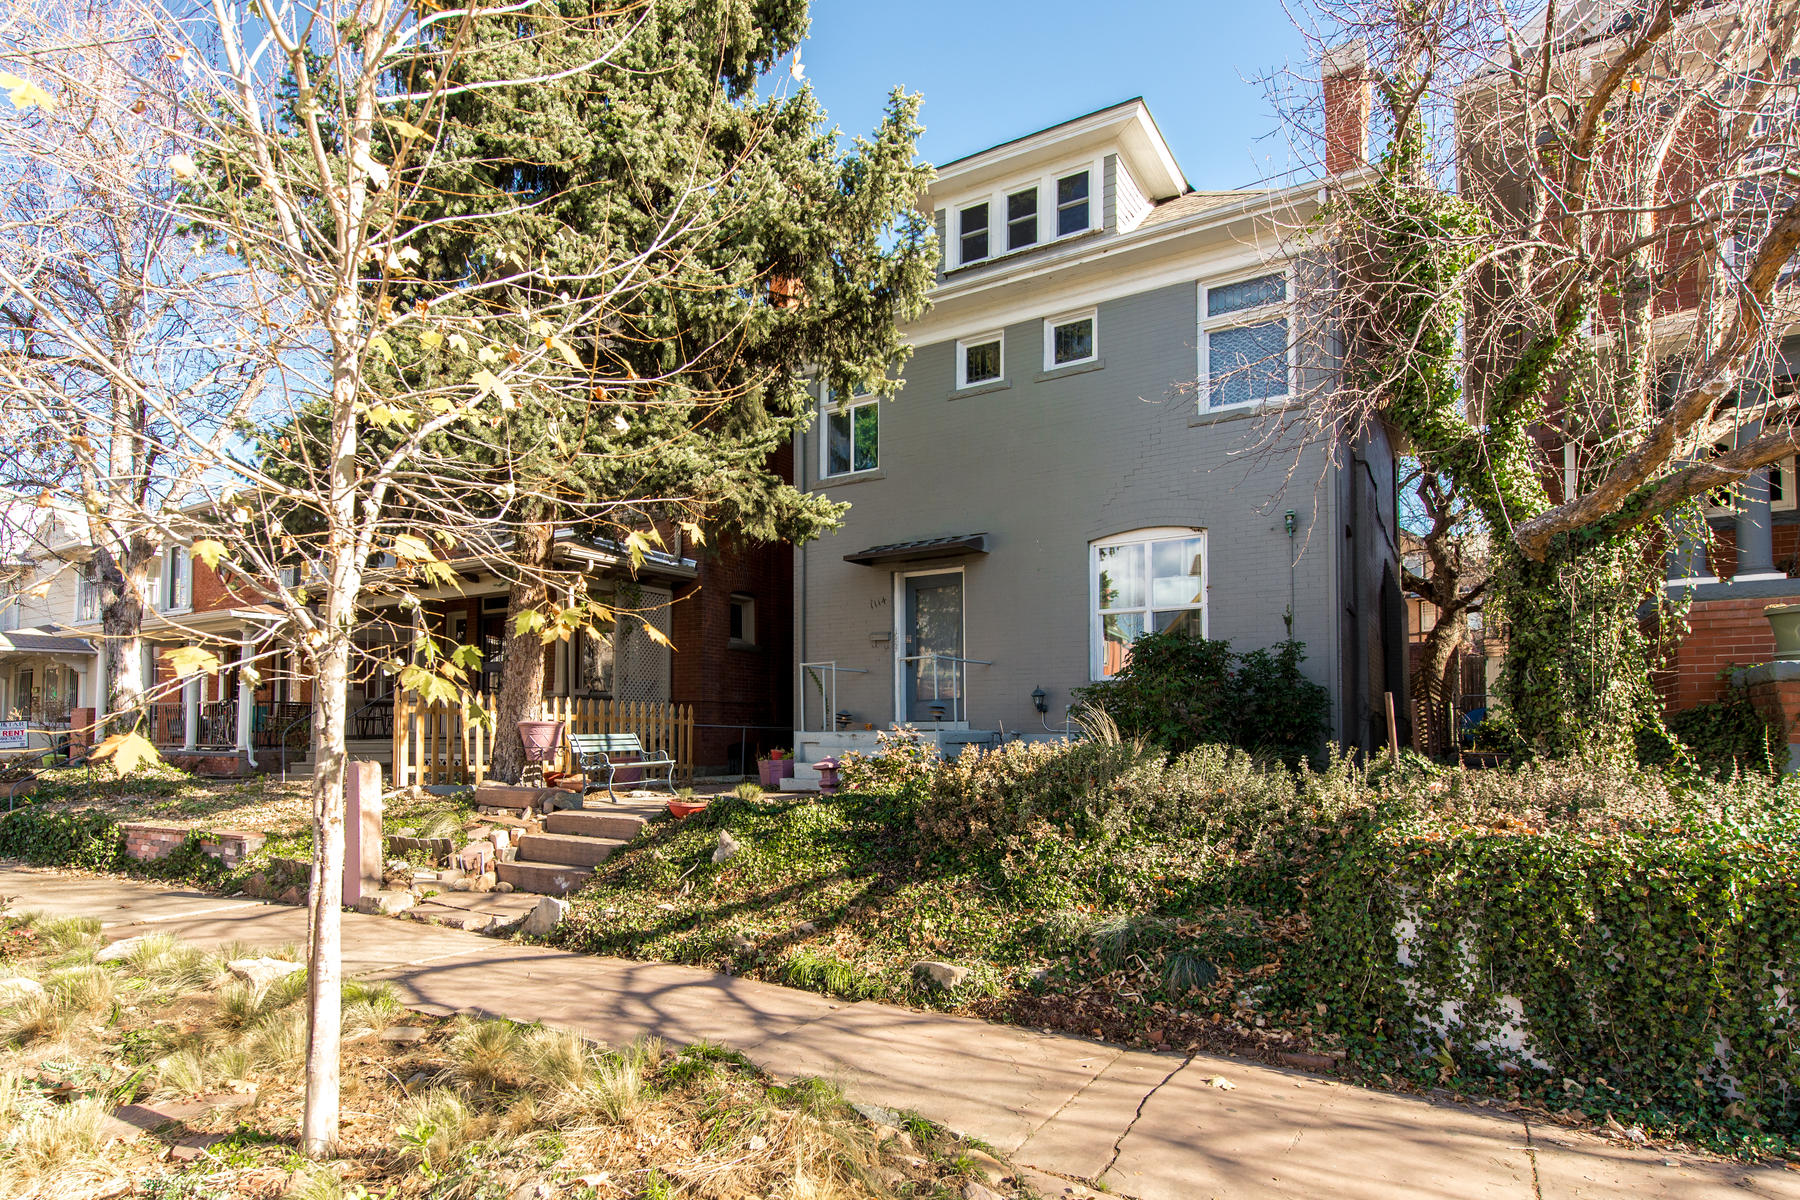 Additional photo for property listing at Great opportunity. Rent all 5 units or live in one and let the tenants pay your 1114 Downing Street Denver, Colorado 80218 United States